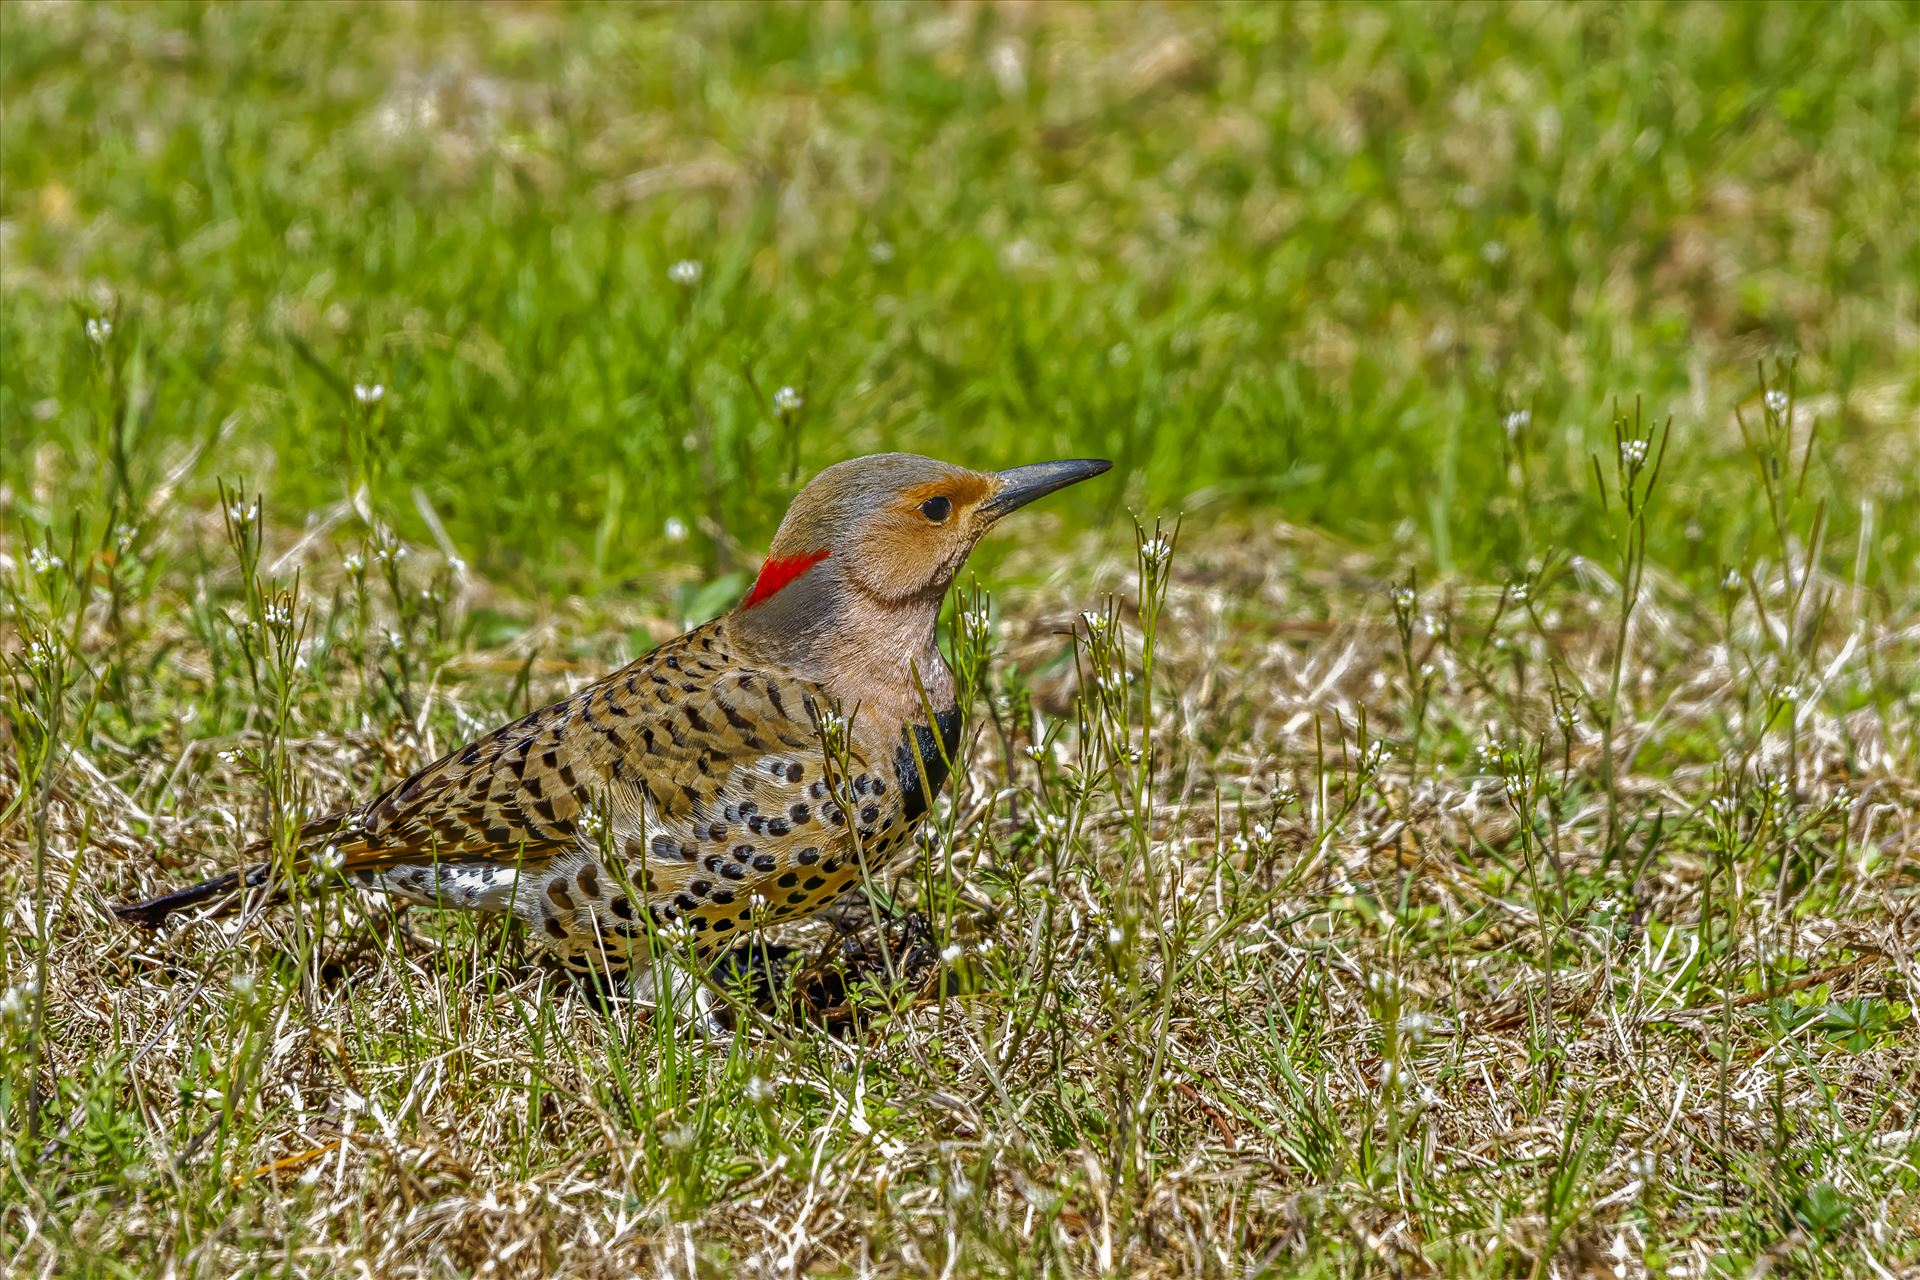 Grounded Northern Flicker - Ground Feeding by Buckmaster